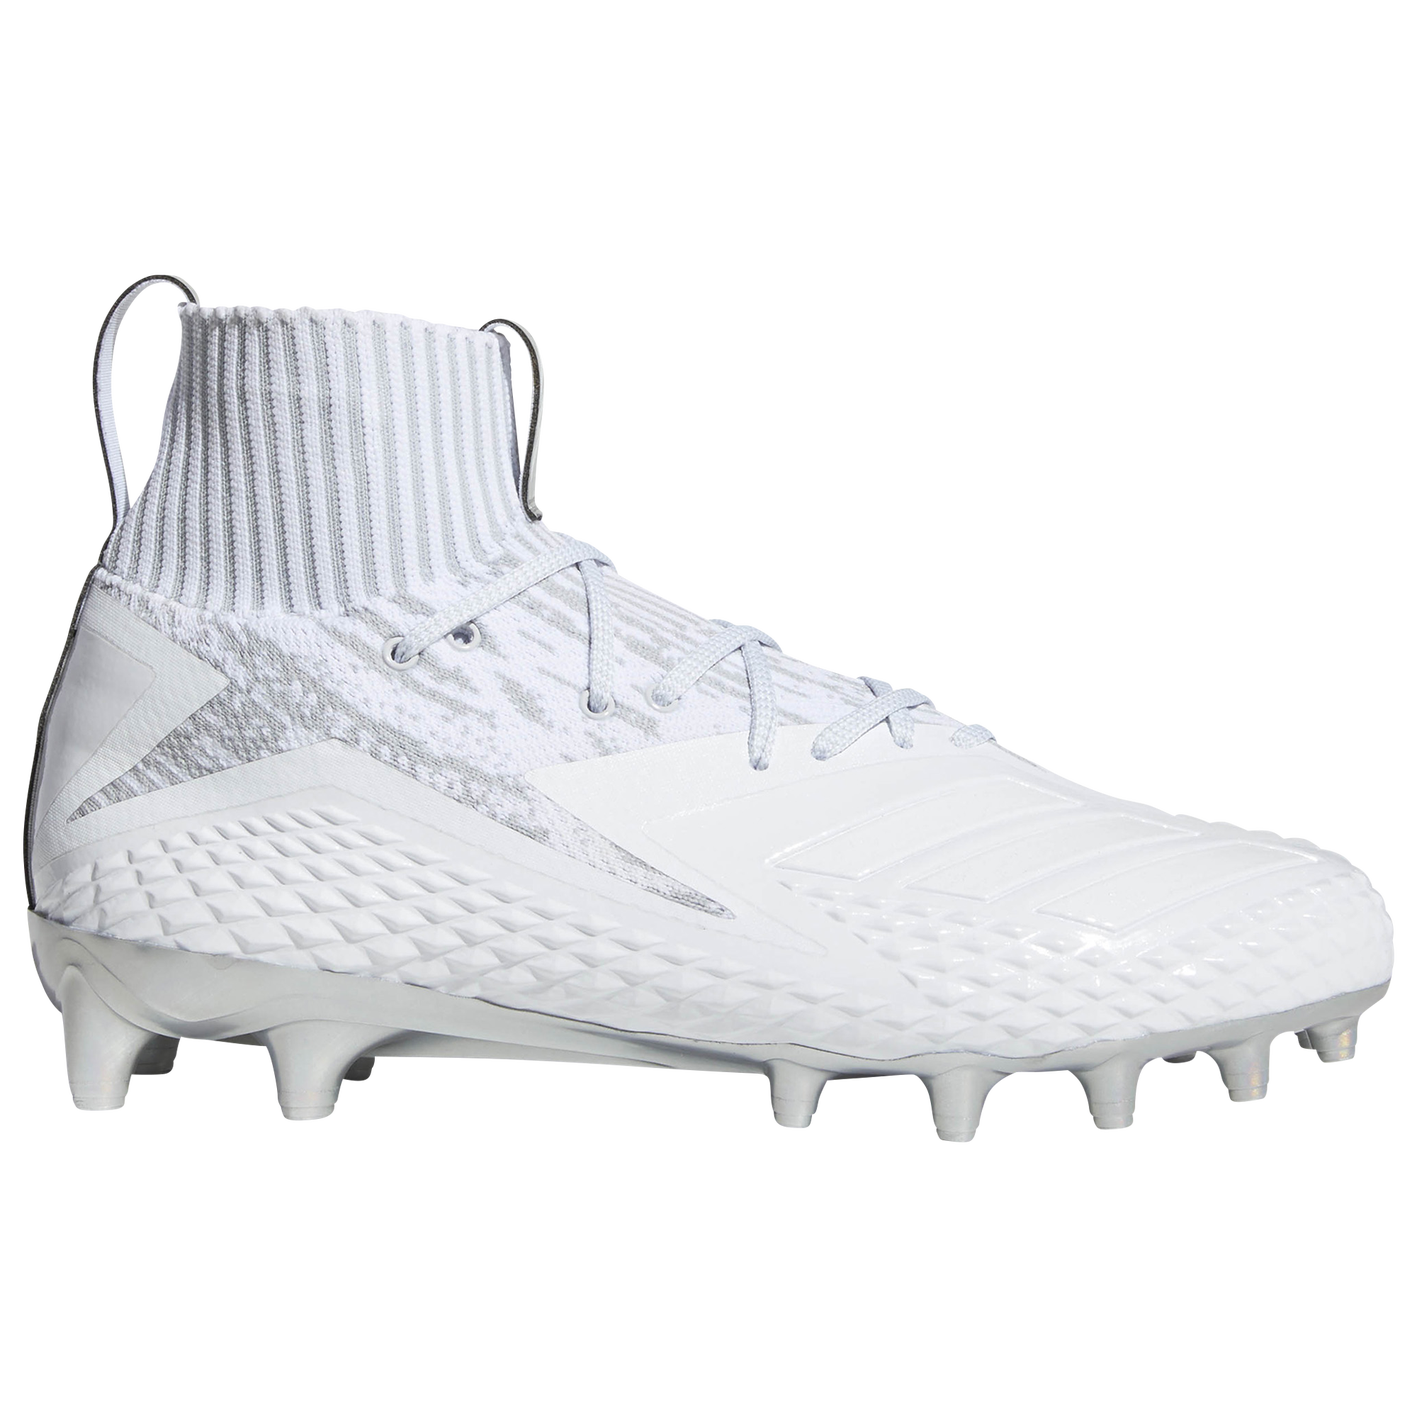 bc219e8e717 adidas Freak Ultra Primeknit - Men s - Football - Shoes - White ...